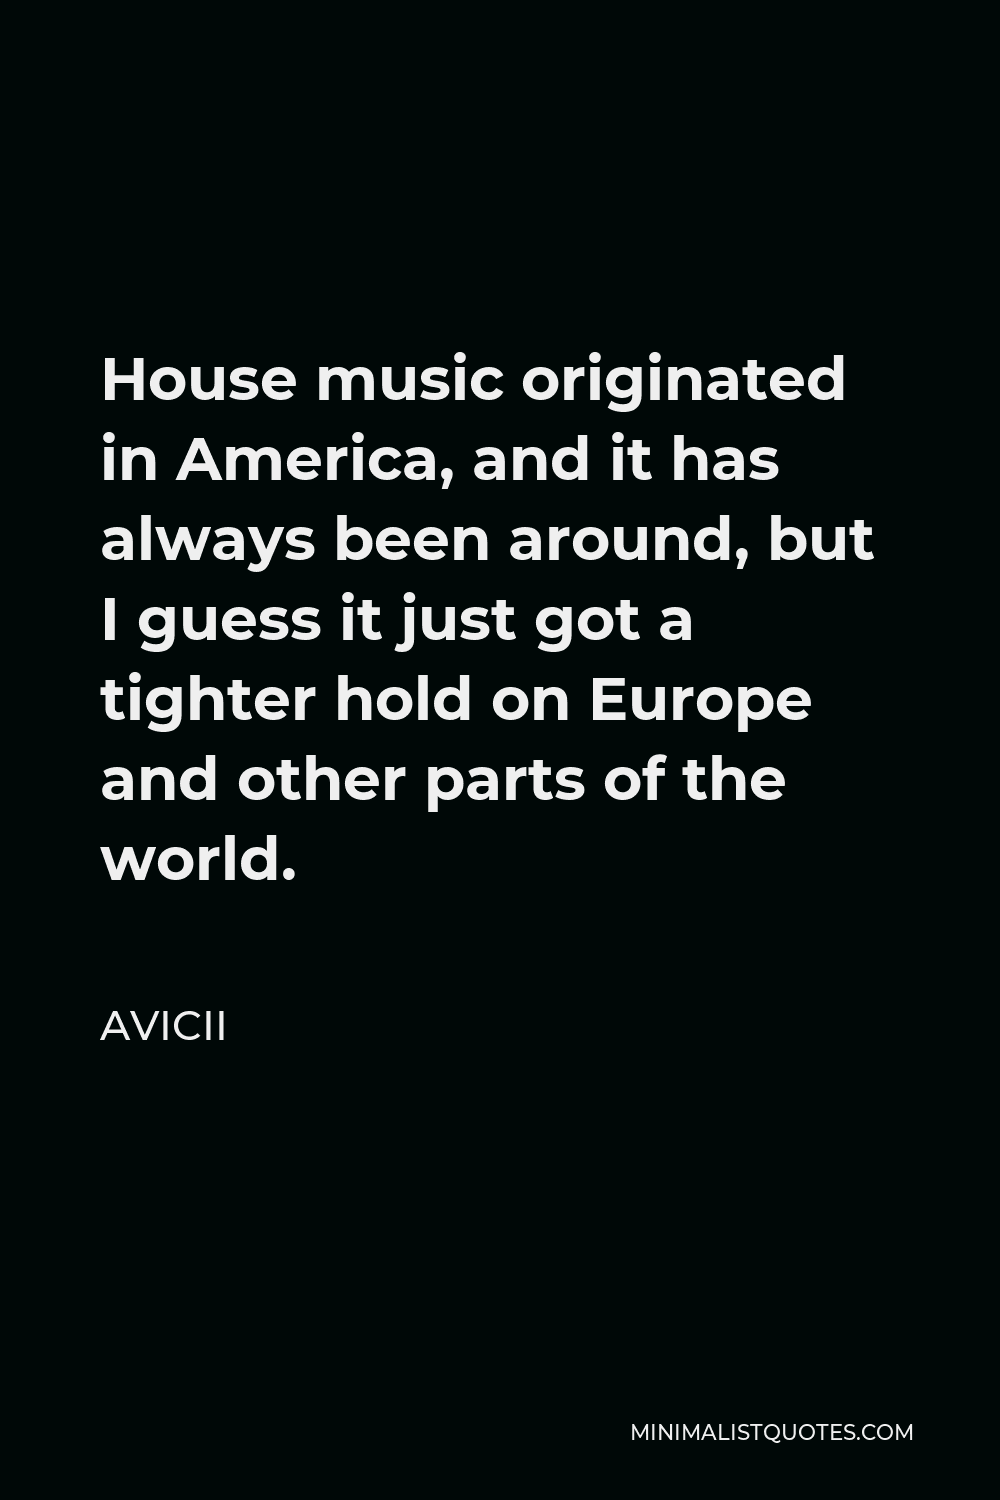 Avicii Quote - House music originated in America, and it has always been around, but I guess it just got a tighter hold on Europe and other parts of the world.